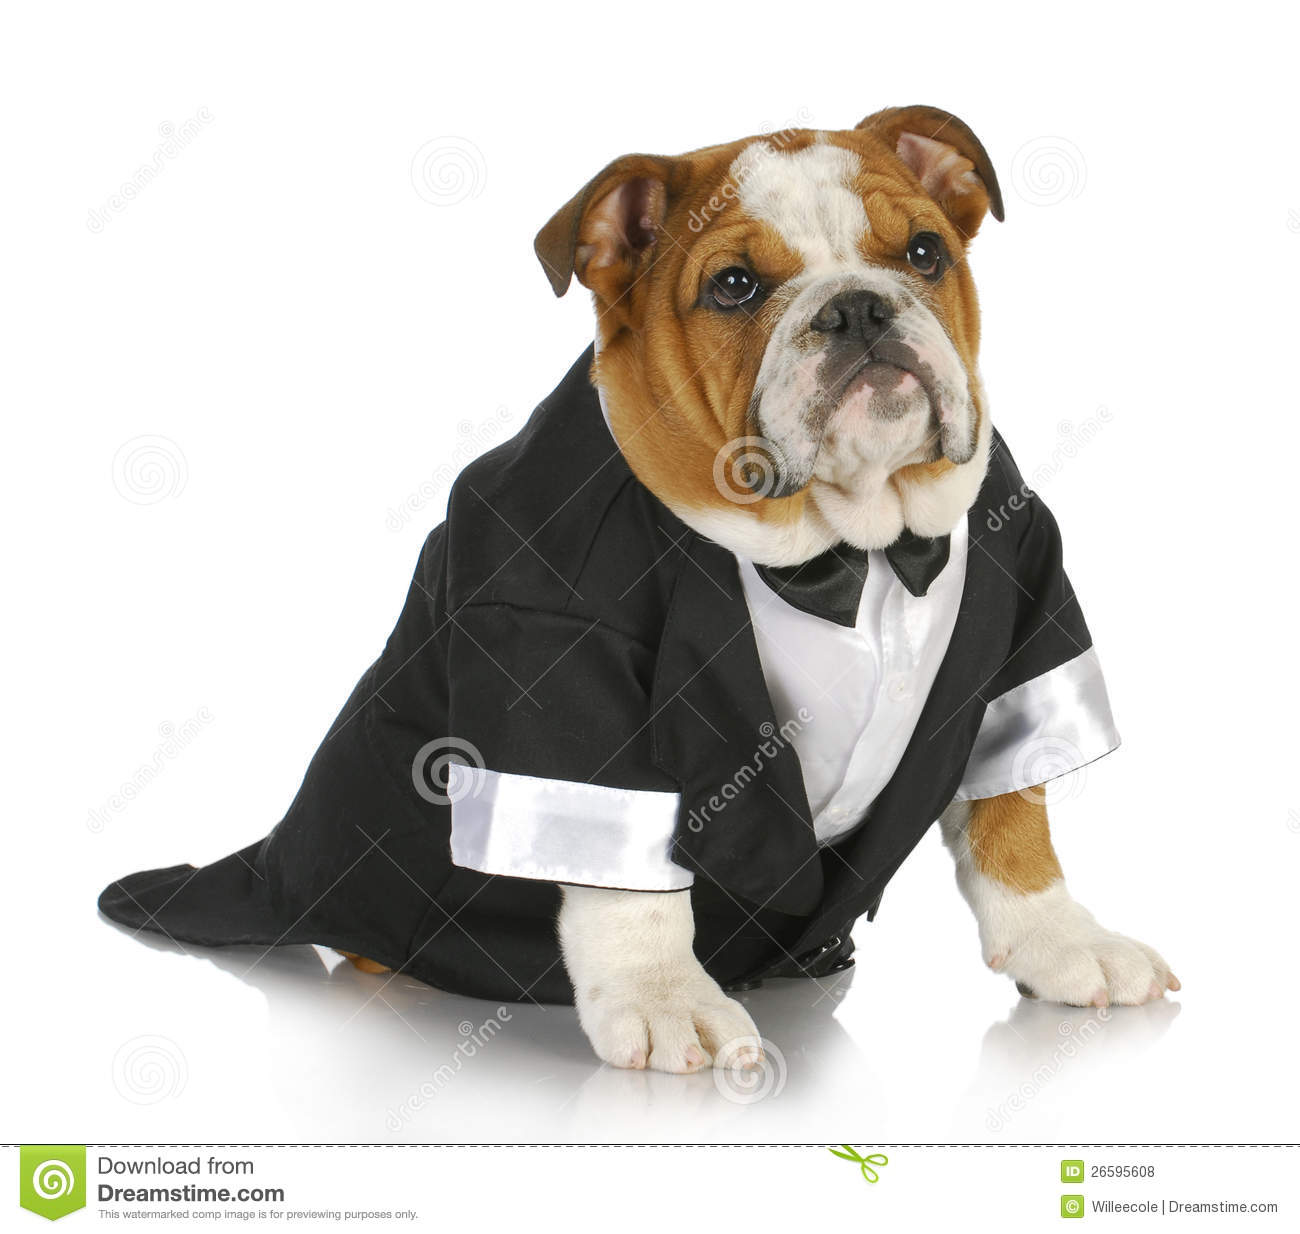 English bulldog wearing black tuxedo and tails on white background.